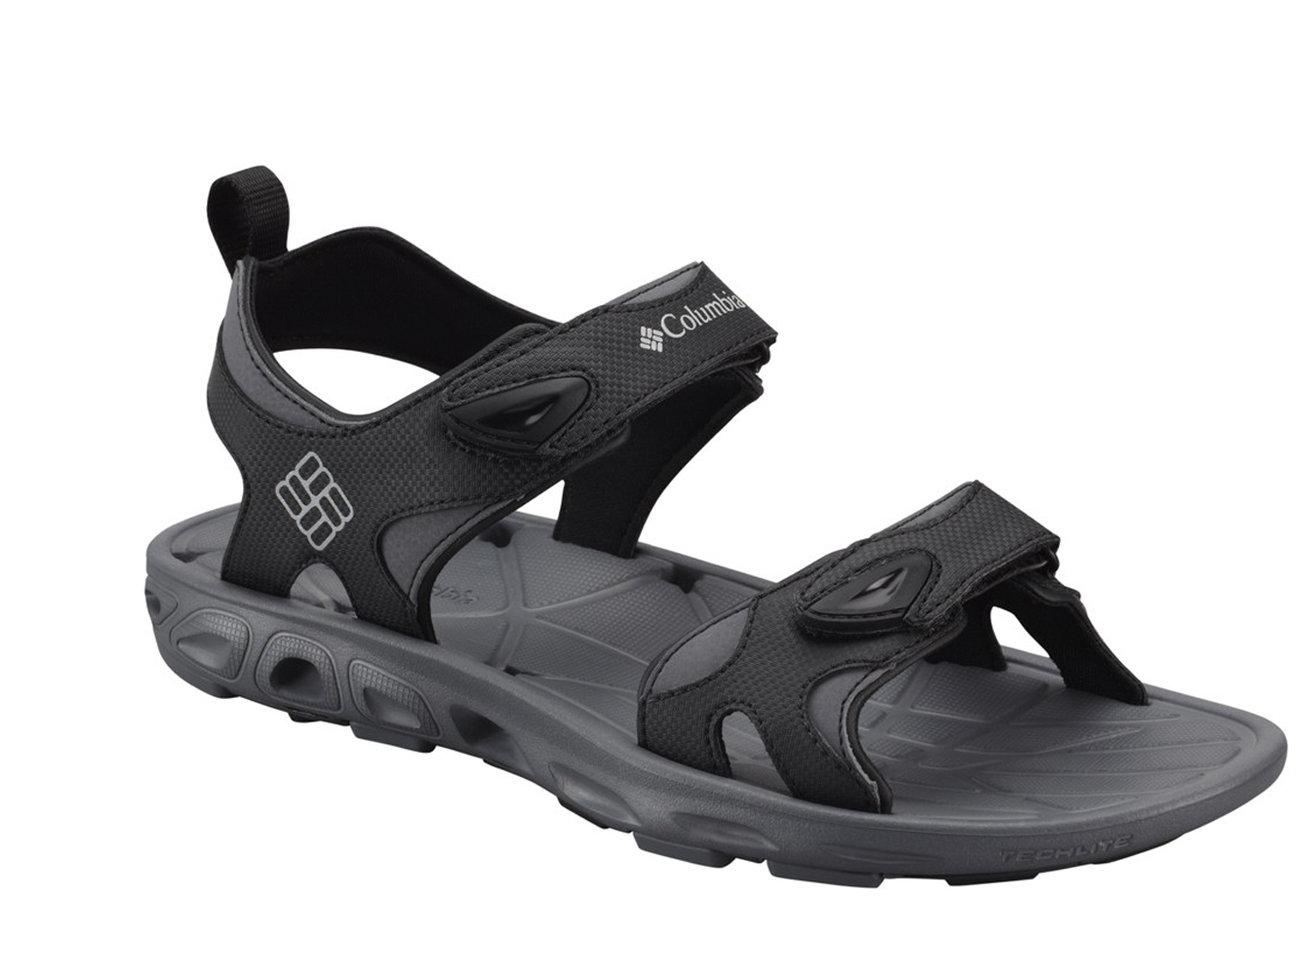 c6db1a88d9ee0 Best Hiking Sandals for Men